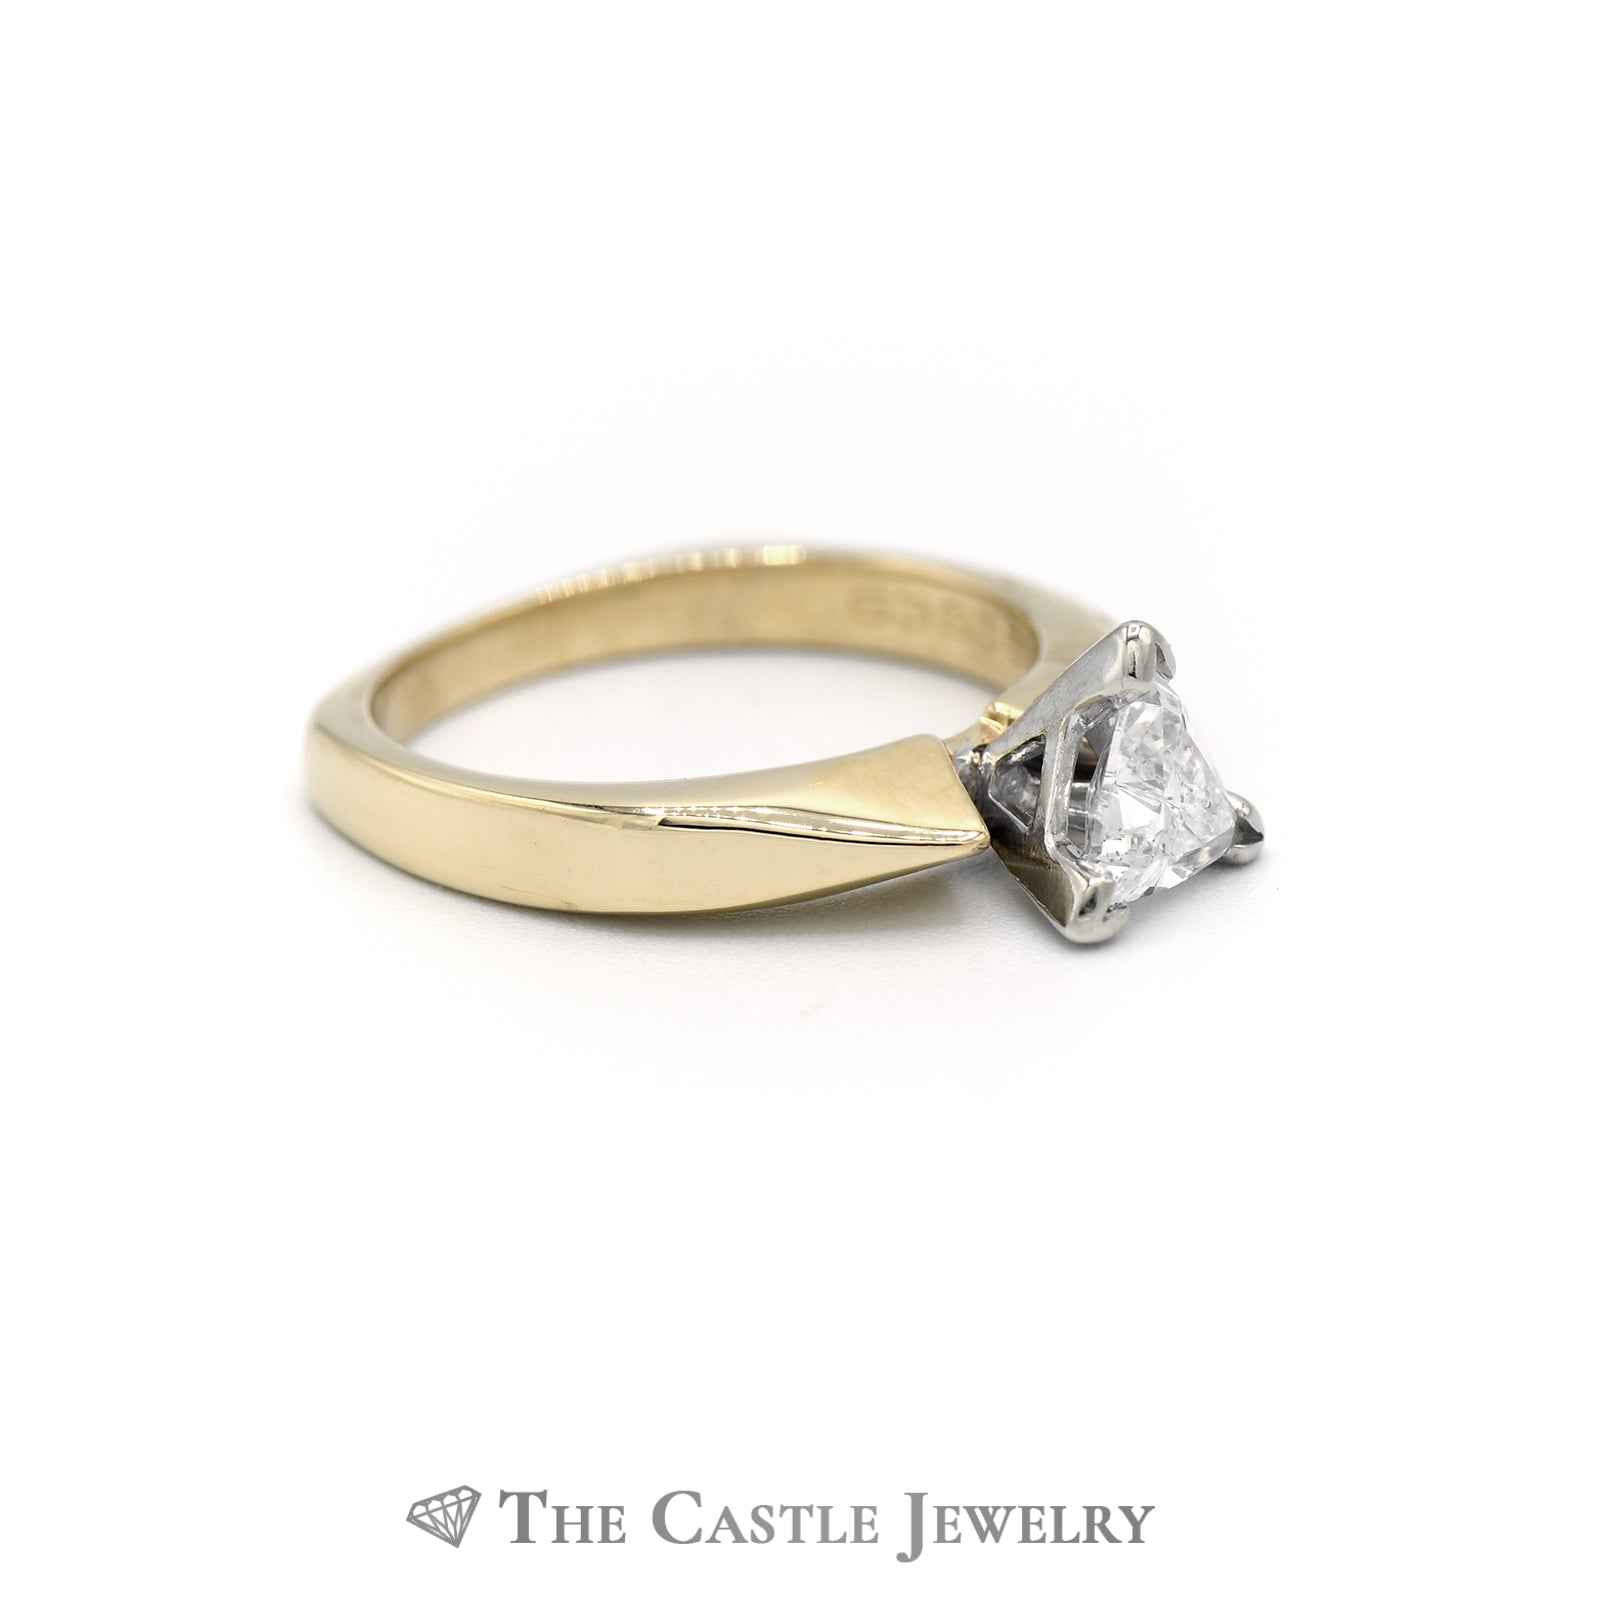 Trillion Cut Solitaire Diamond Engagement Ring in 14K Yellow Gold-2